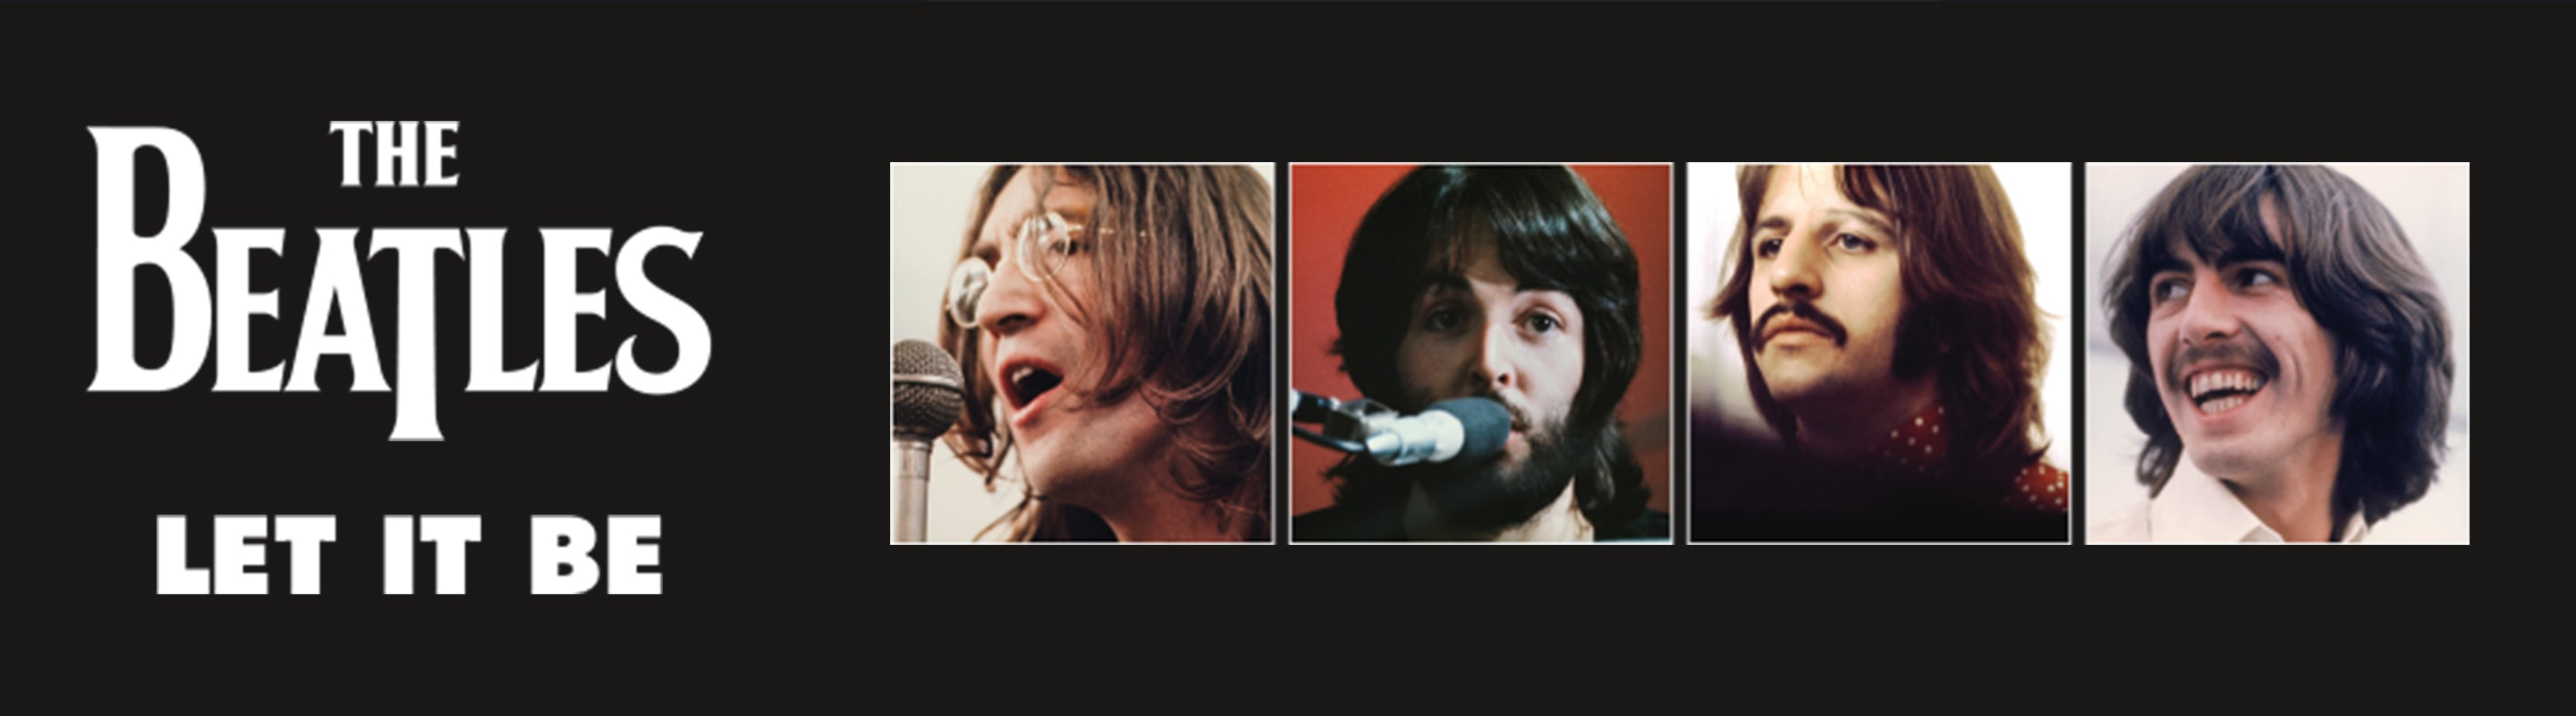 The Beatles Let It Be Banner